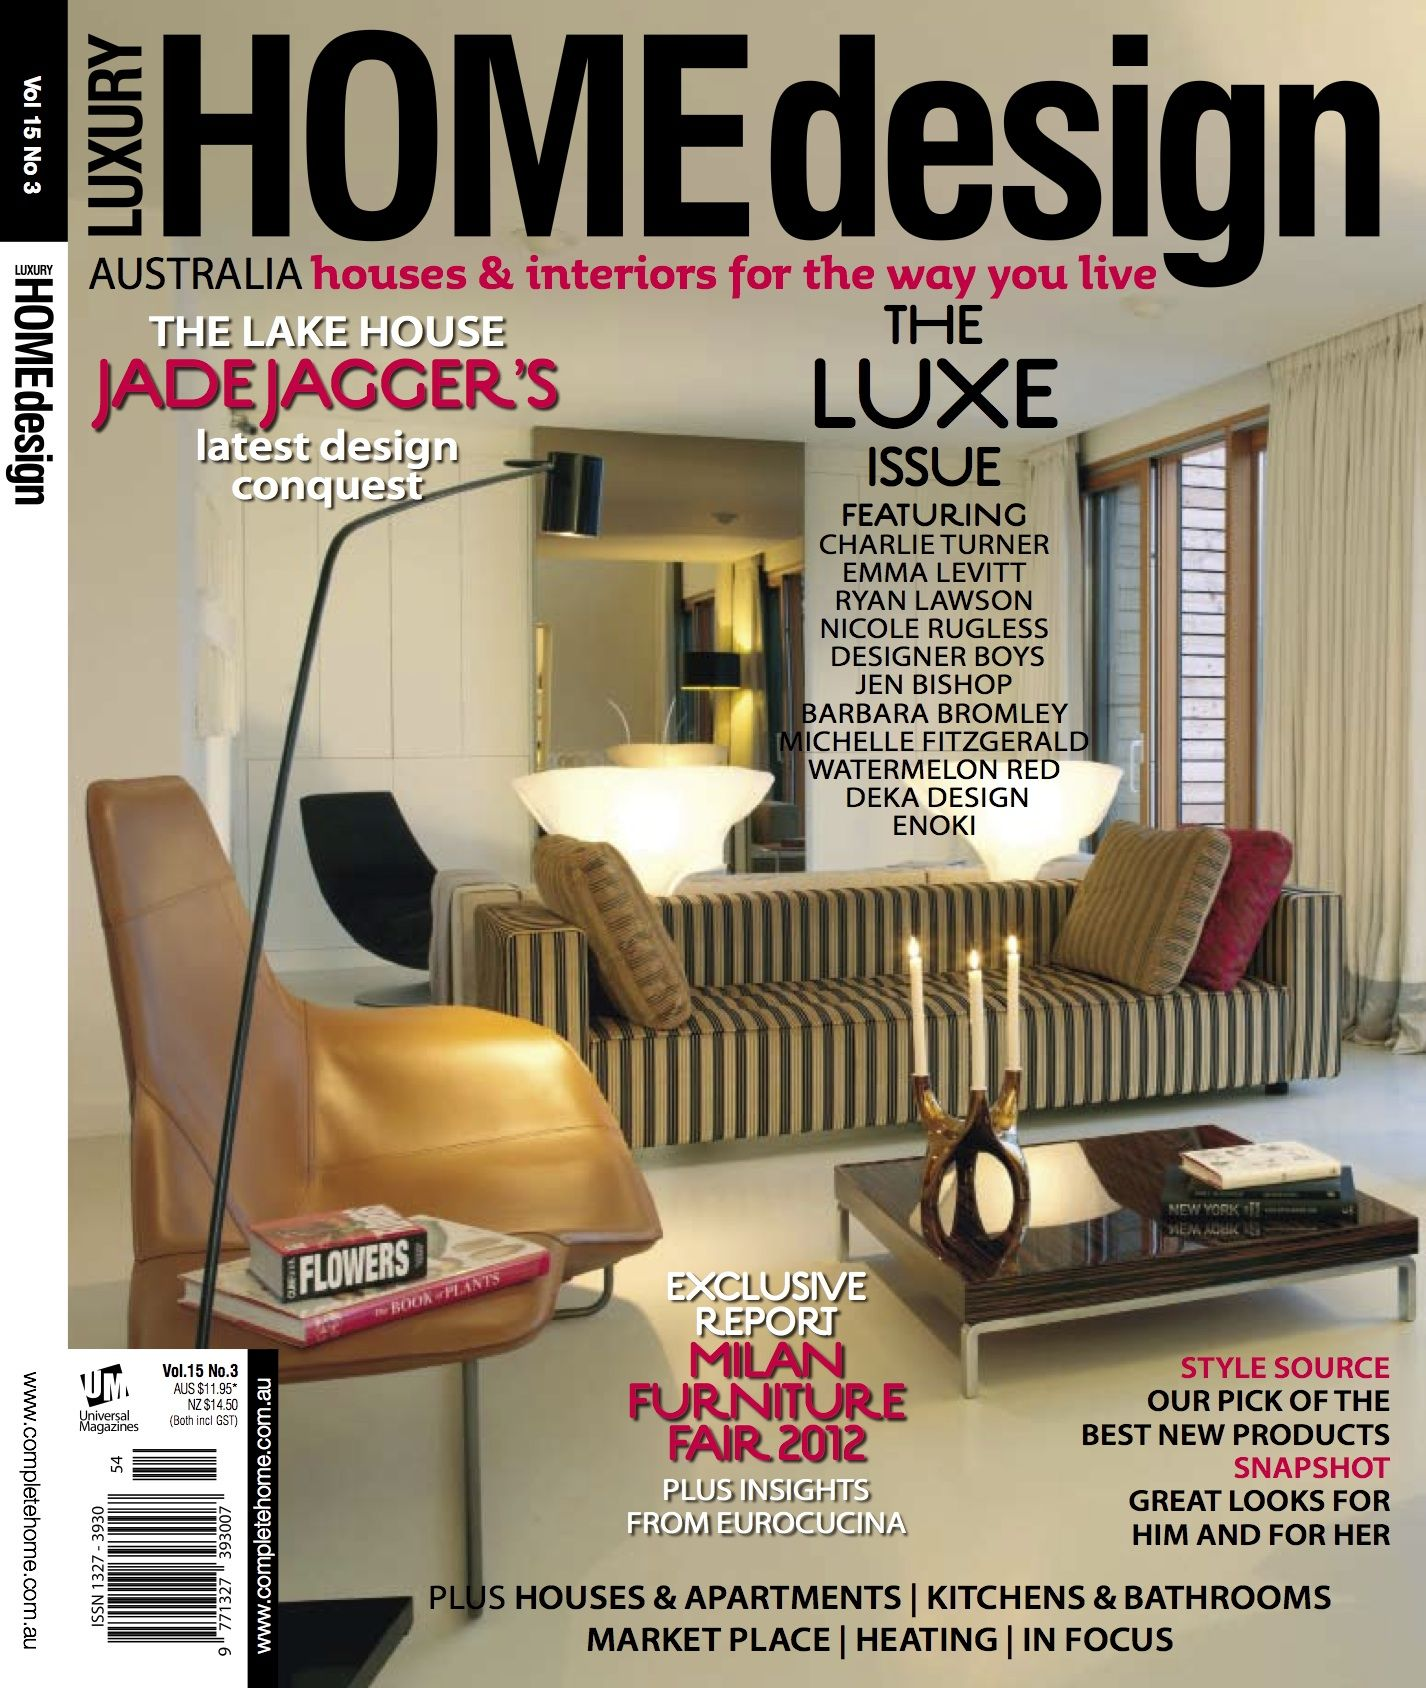 interior design magazine covers  Google Search  magazine